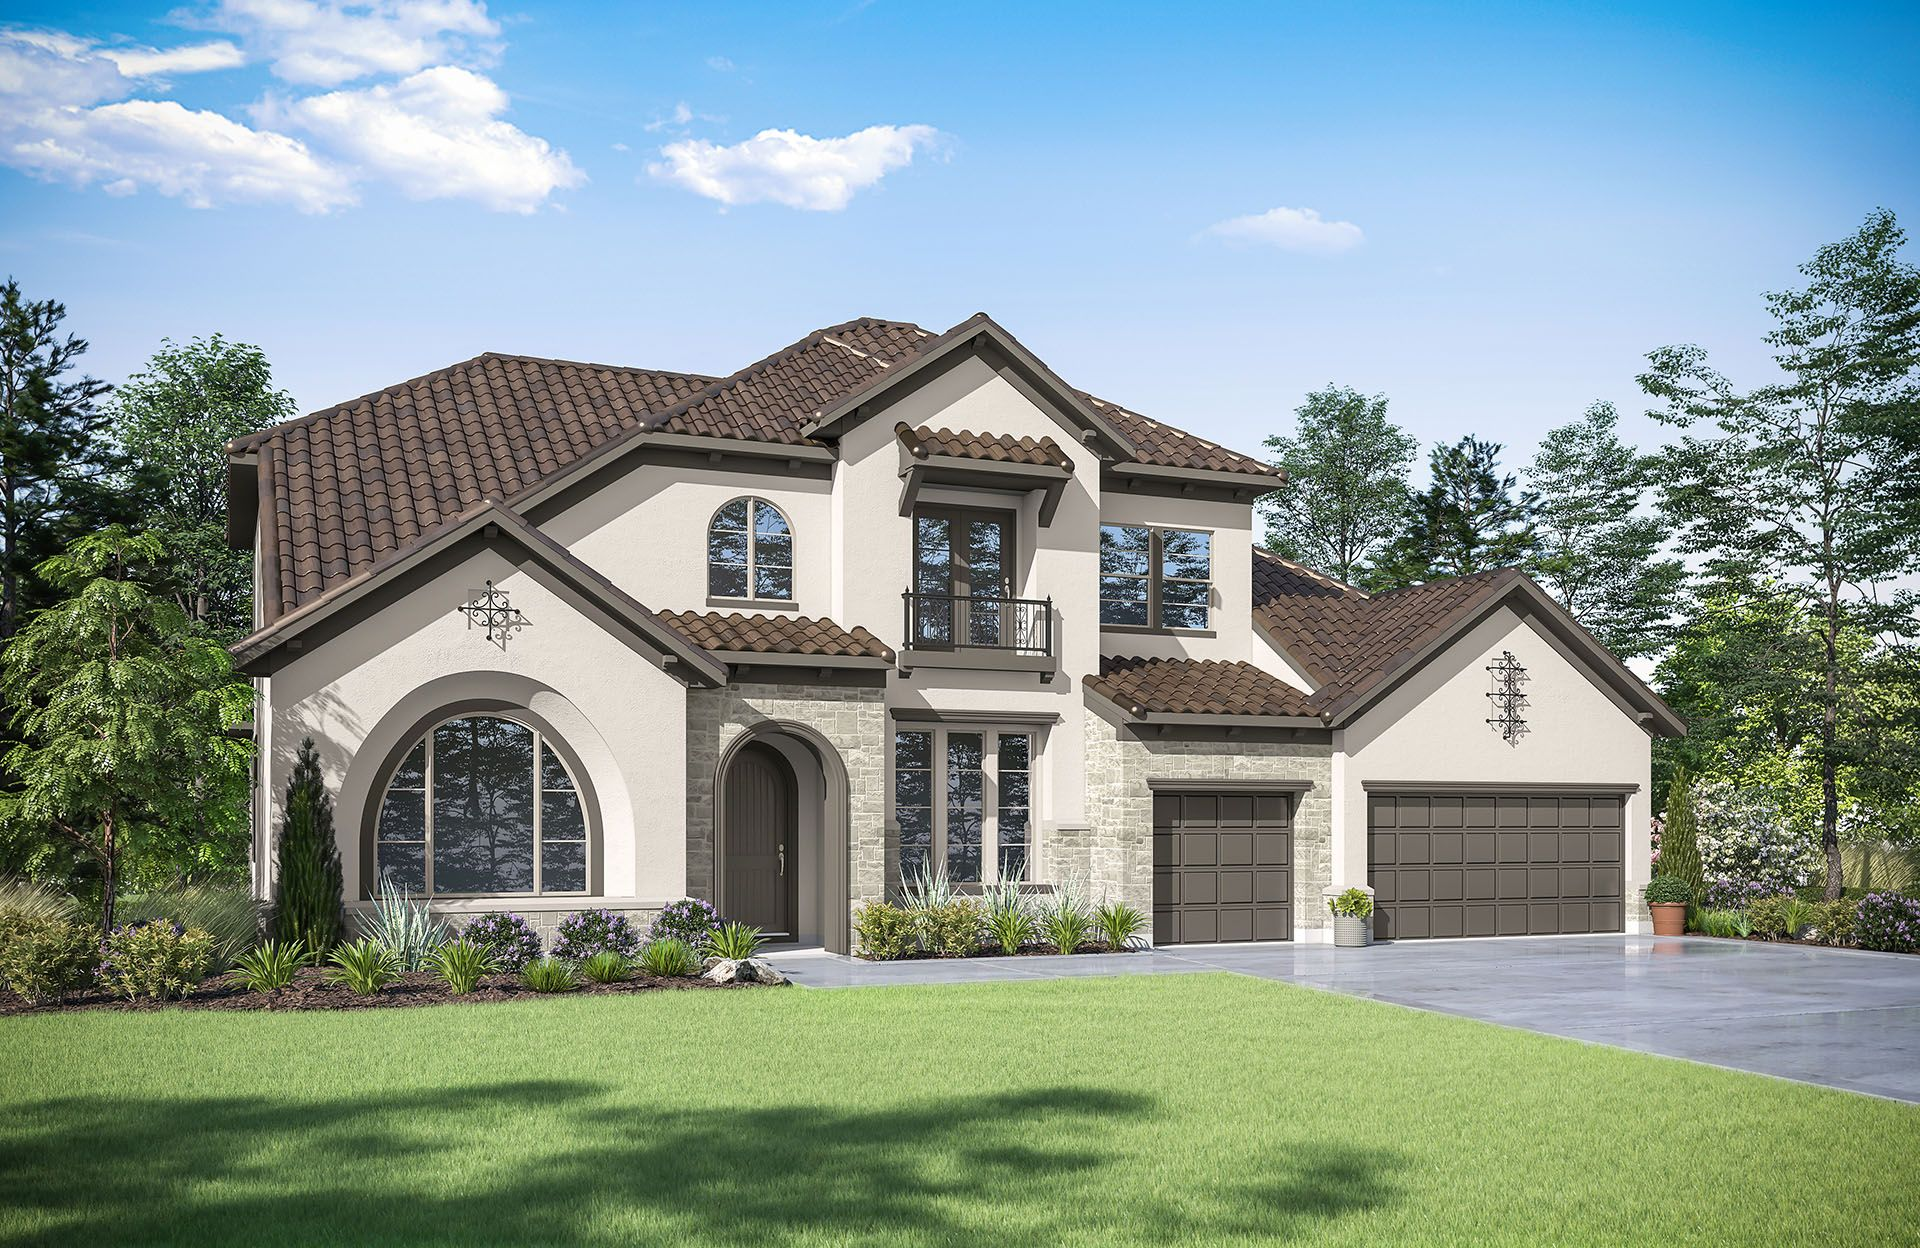 Single Family for Active at West Parke - Colinas 1501 Parke Bluff Bend Cedar Park, Texas 78613 United States